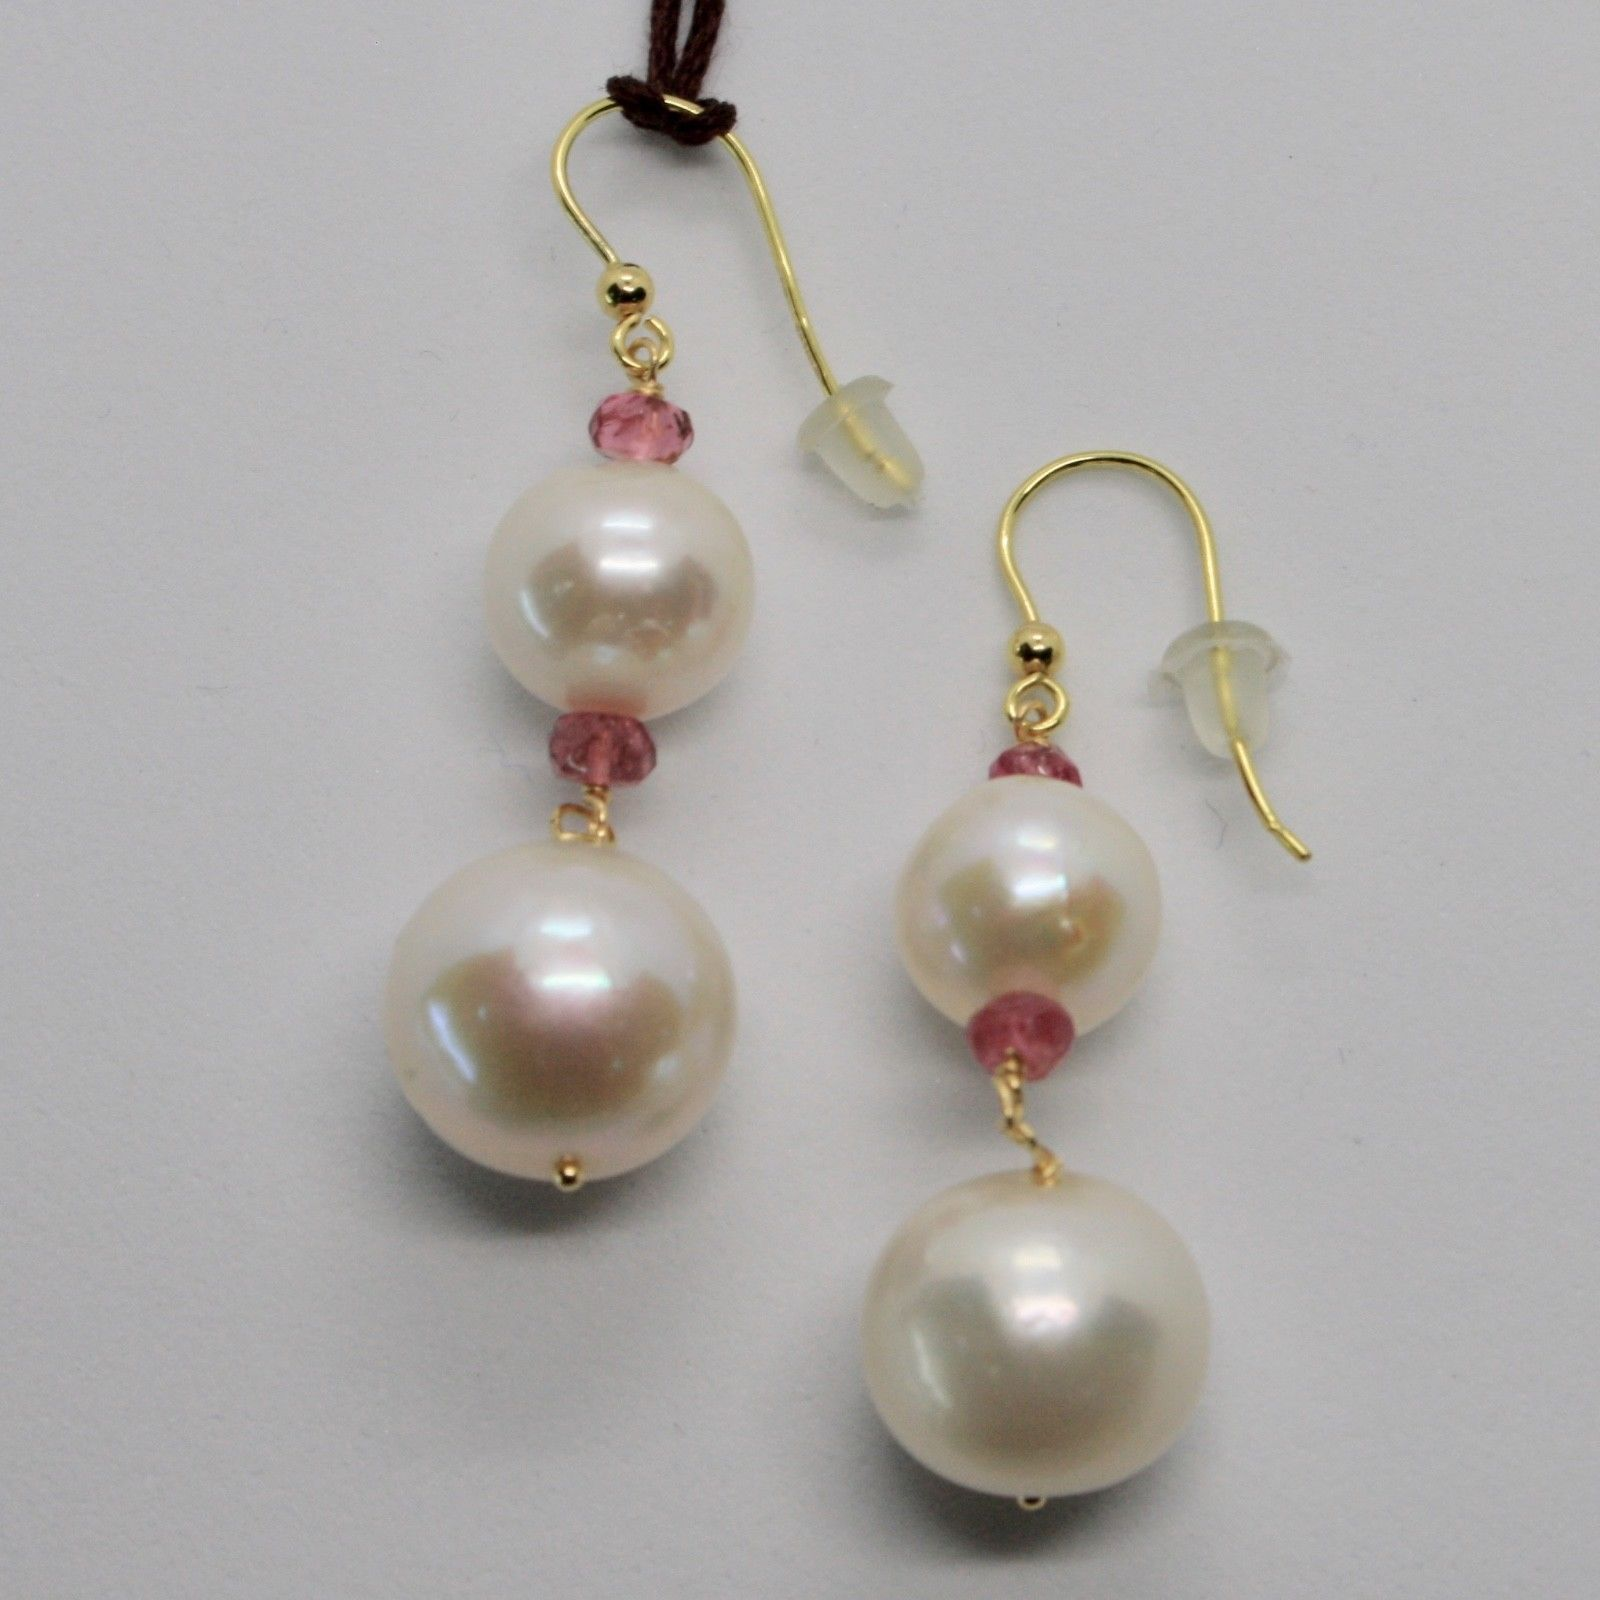 SOLID 18K YELLOW GOLD EARRINGS WITH WHITE FW PEARL AND TOURMALINE MADE IN ITALY